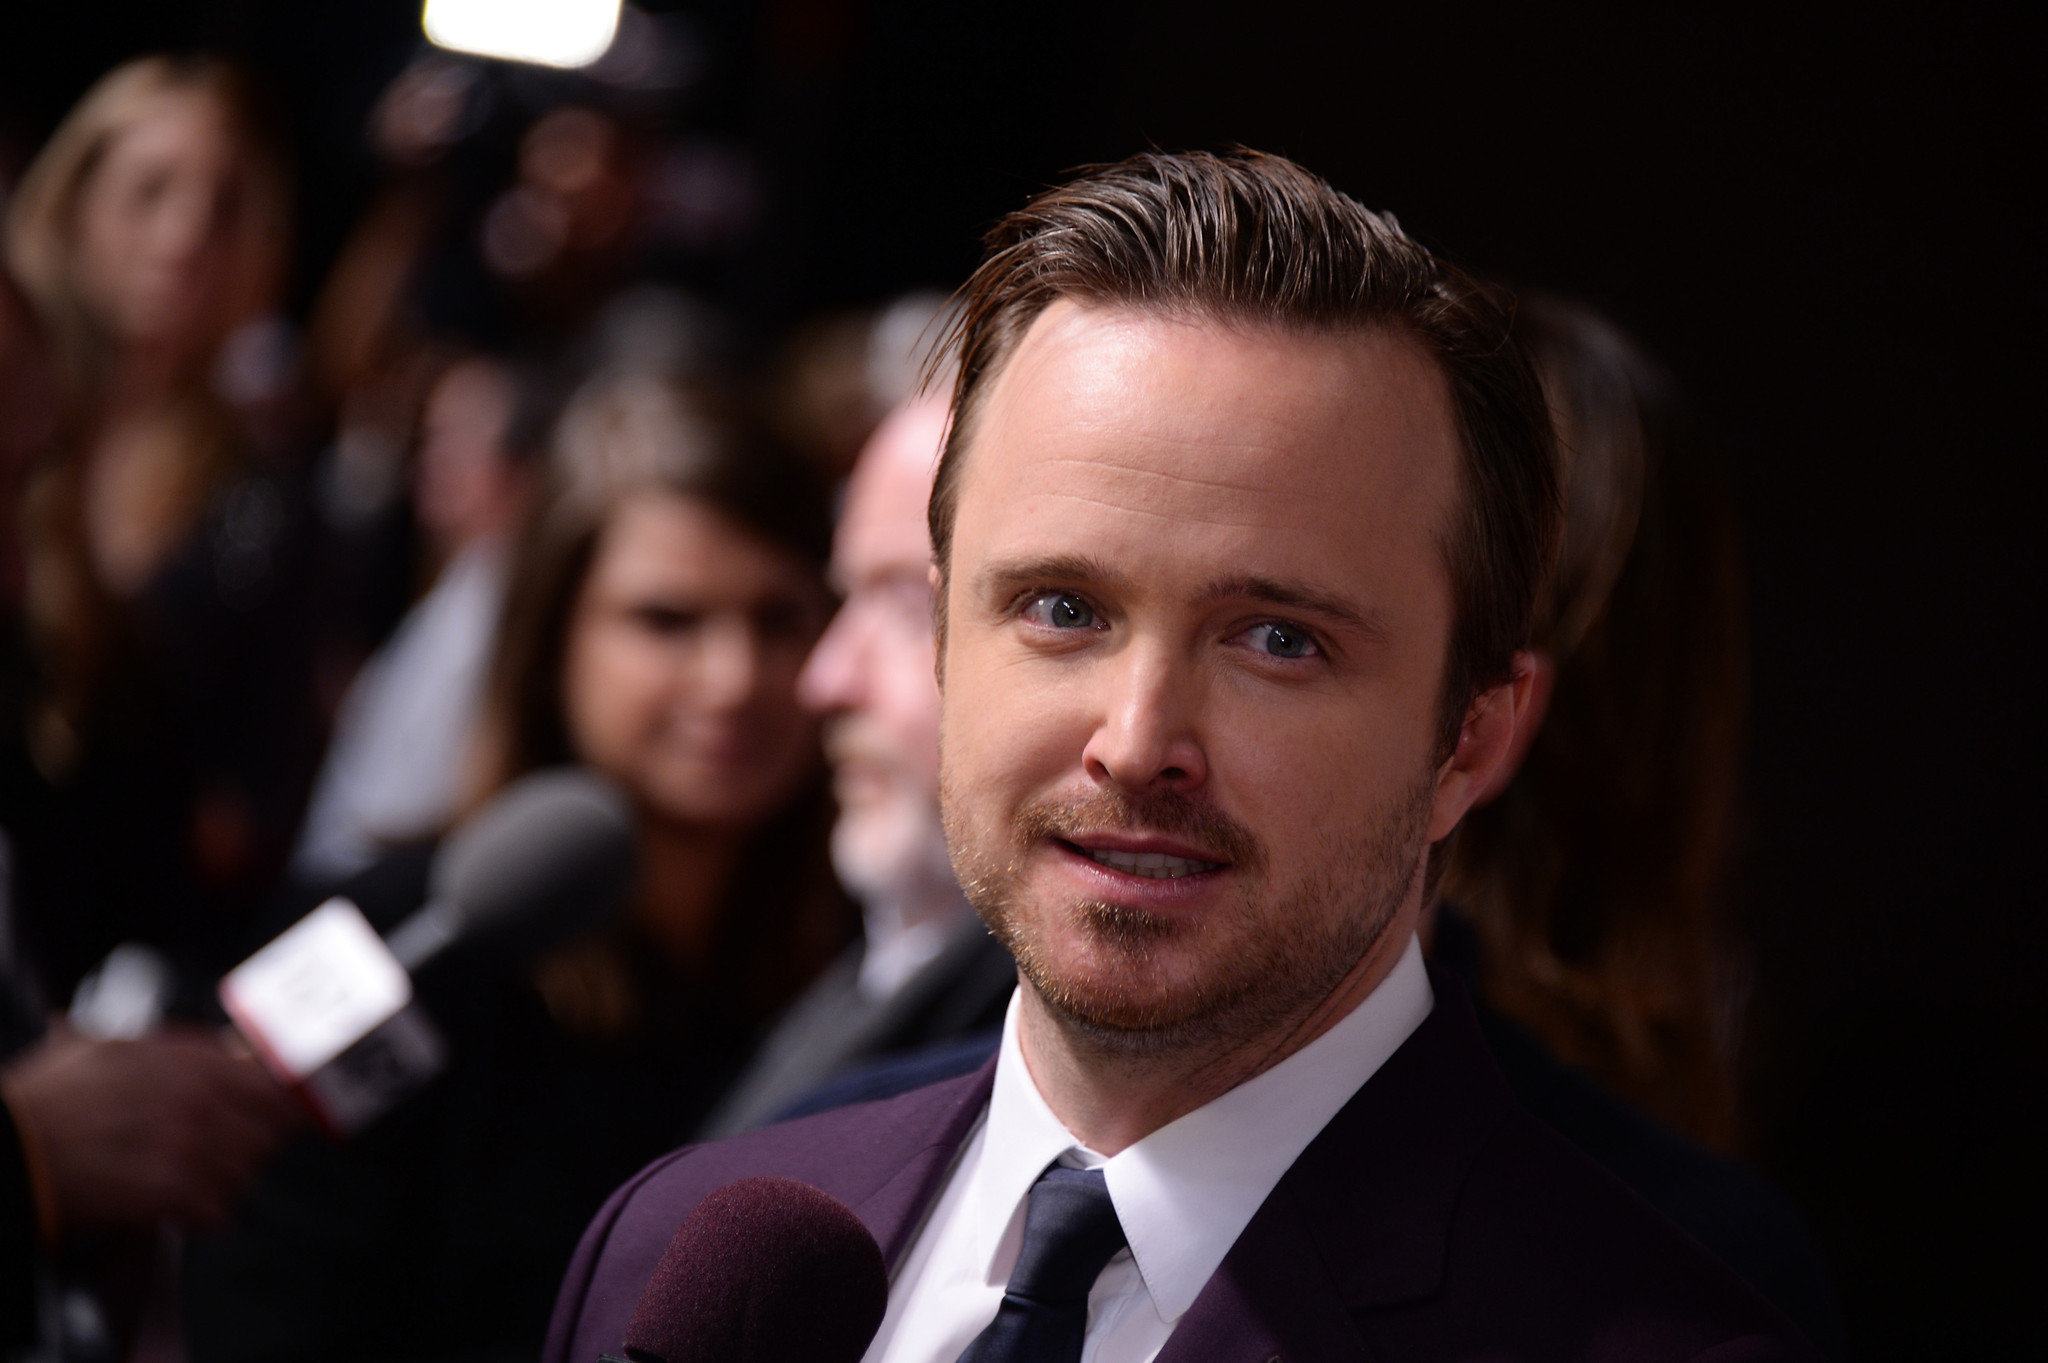 Aaron Paul cooks up own app, 'Breaking Bad' style ...